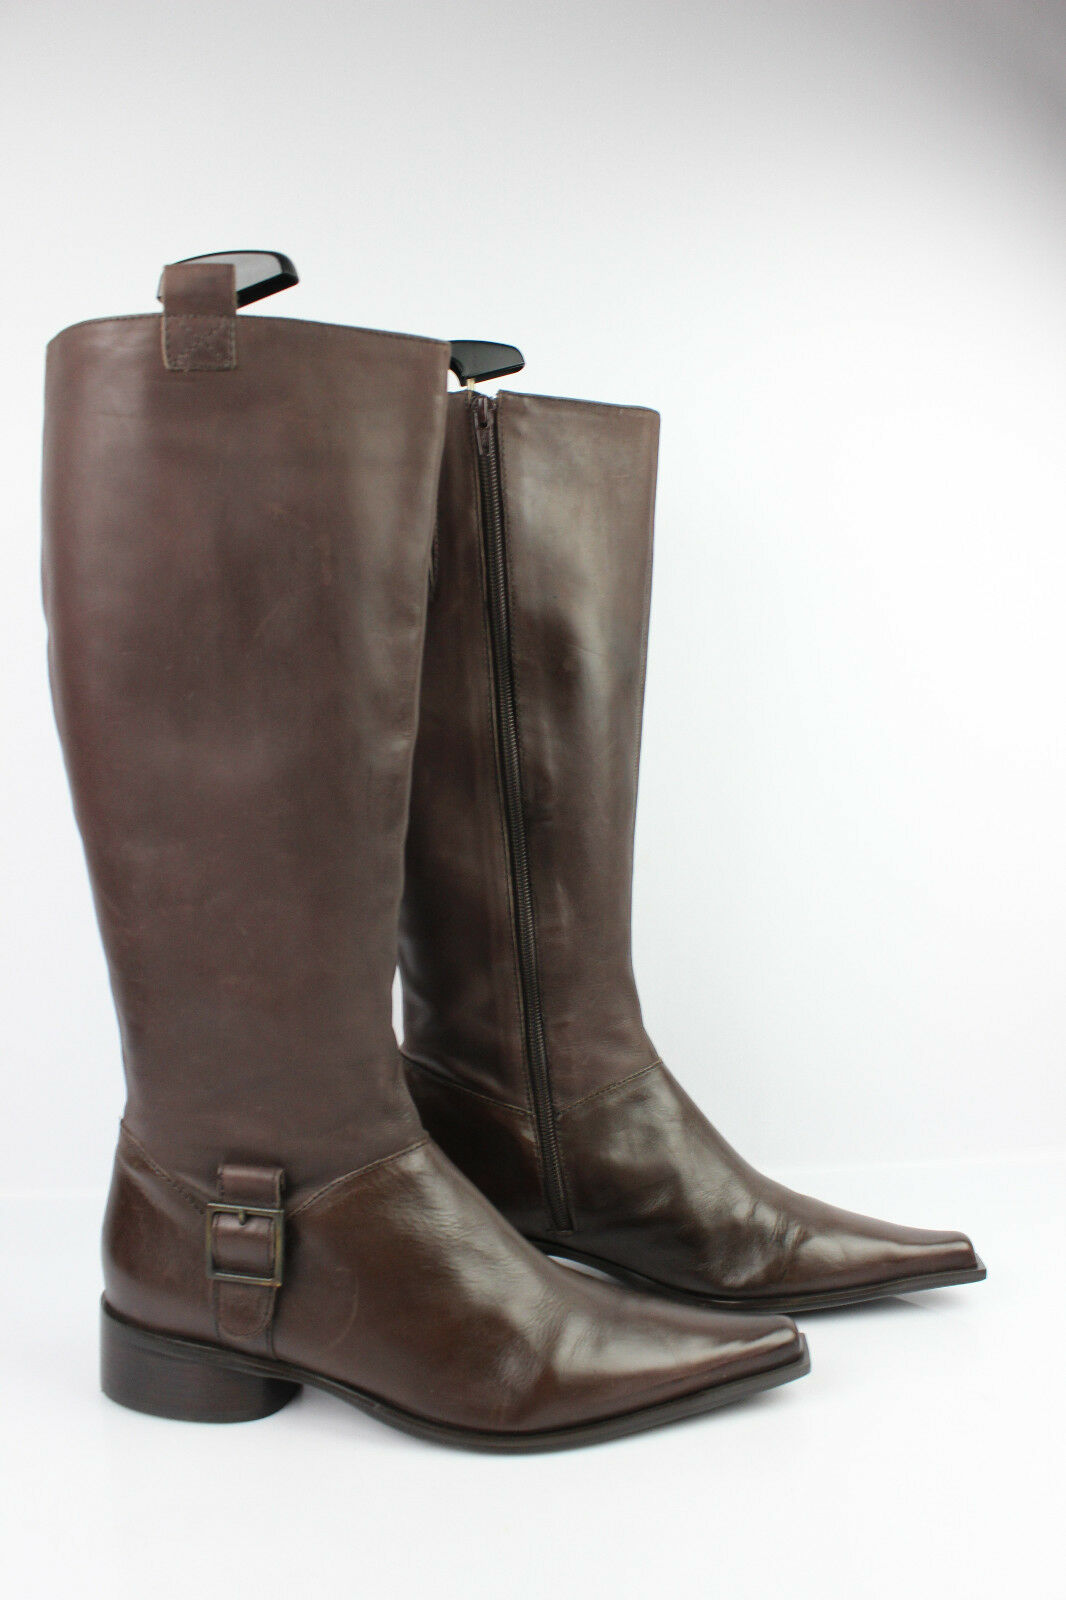 Boots Tips Sharp  pointed OPPUS Brown Leather T 40 VERY GOOD CONDITION